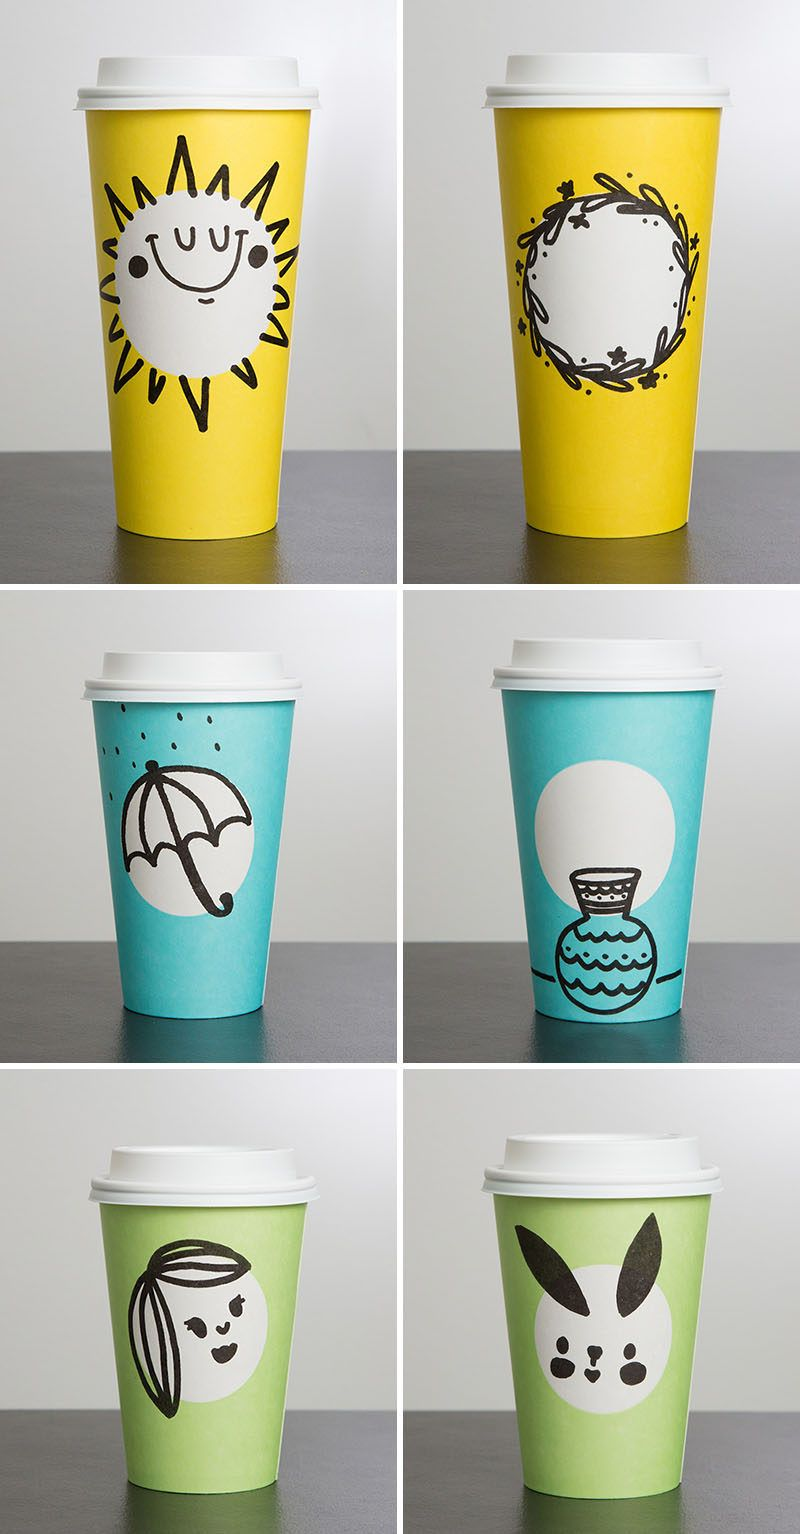 Starbucks Unveils New Spring Themed Cups In Three Fun Colors Paper Cup Design Typography Packaging Coffee Cup Design